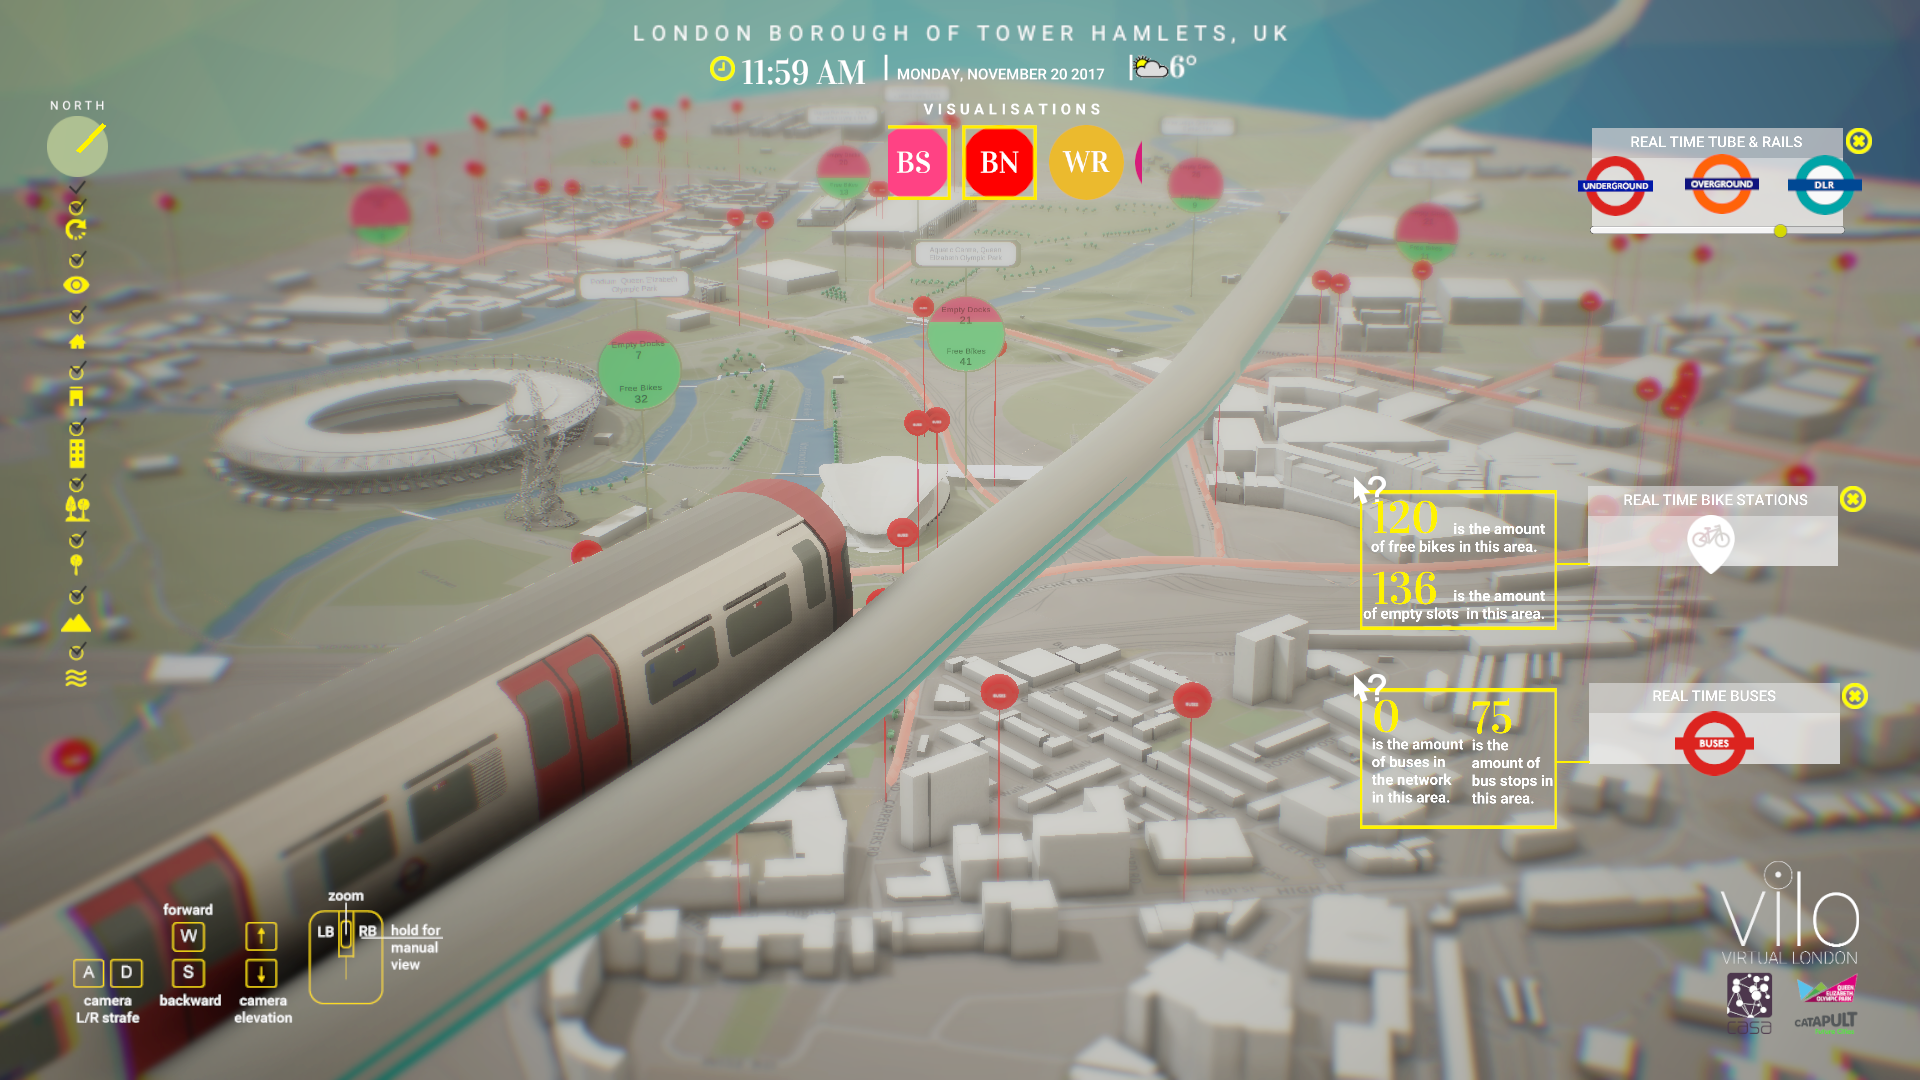 Virtual London model in QEOP showing live sensor and API data